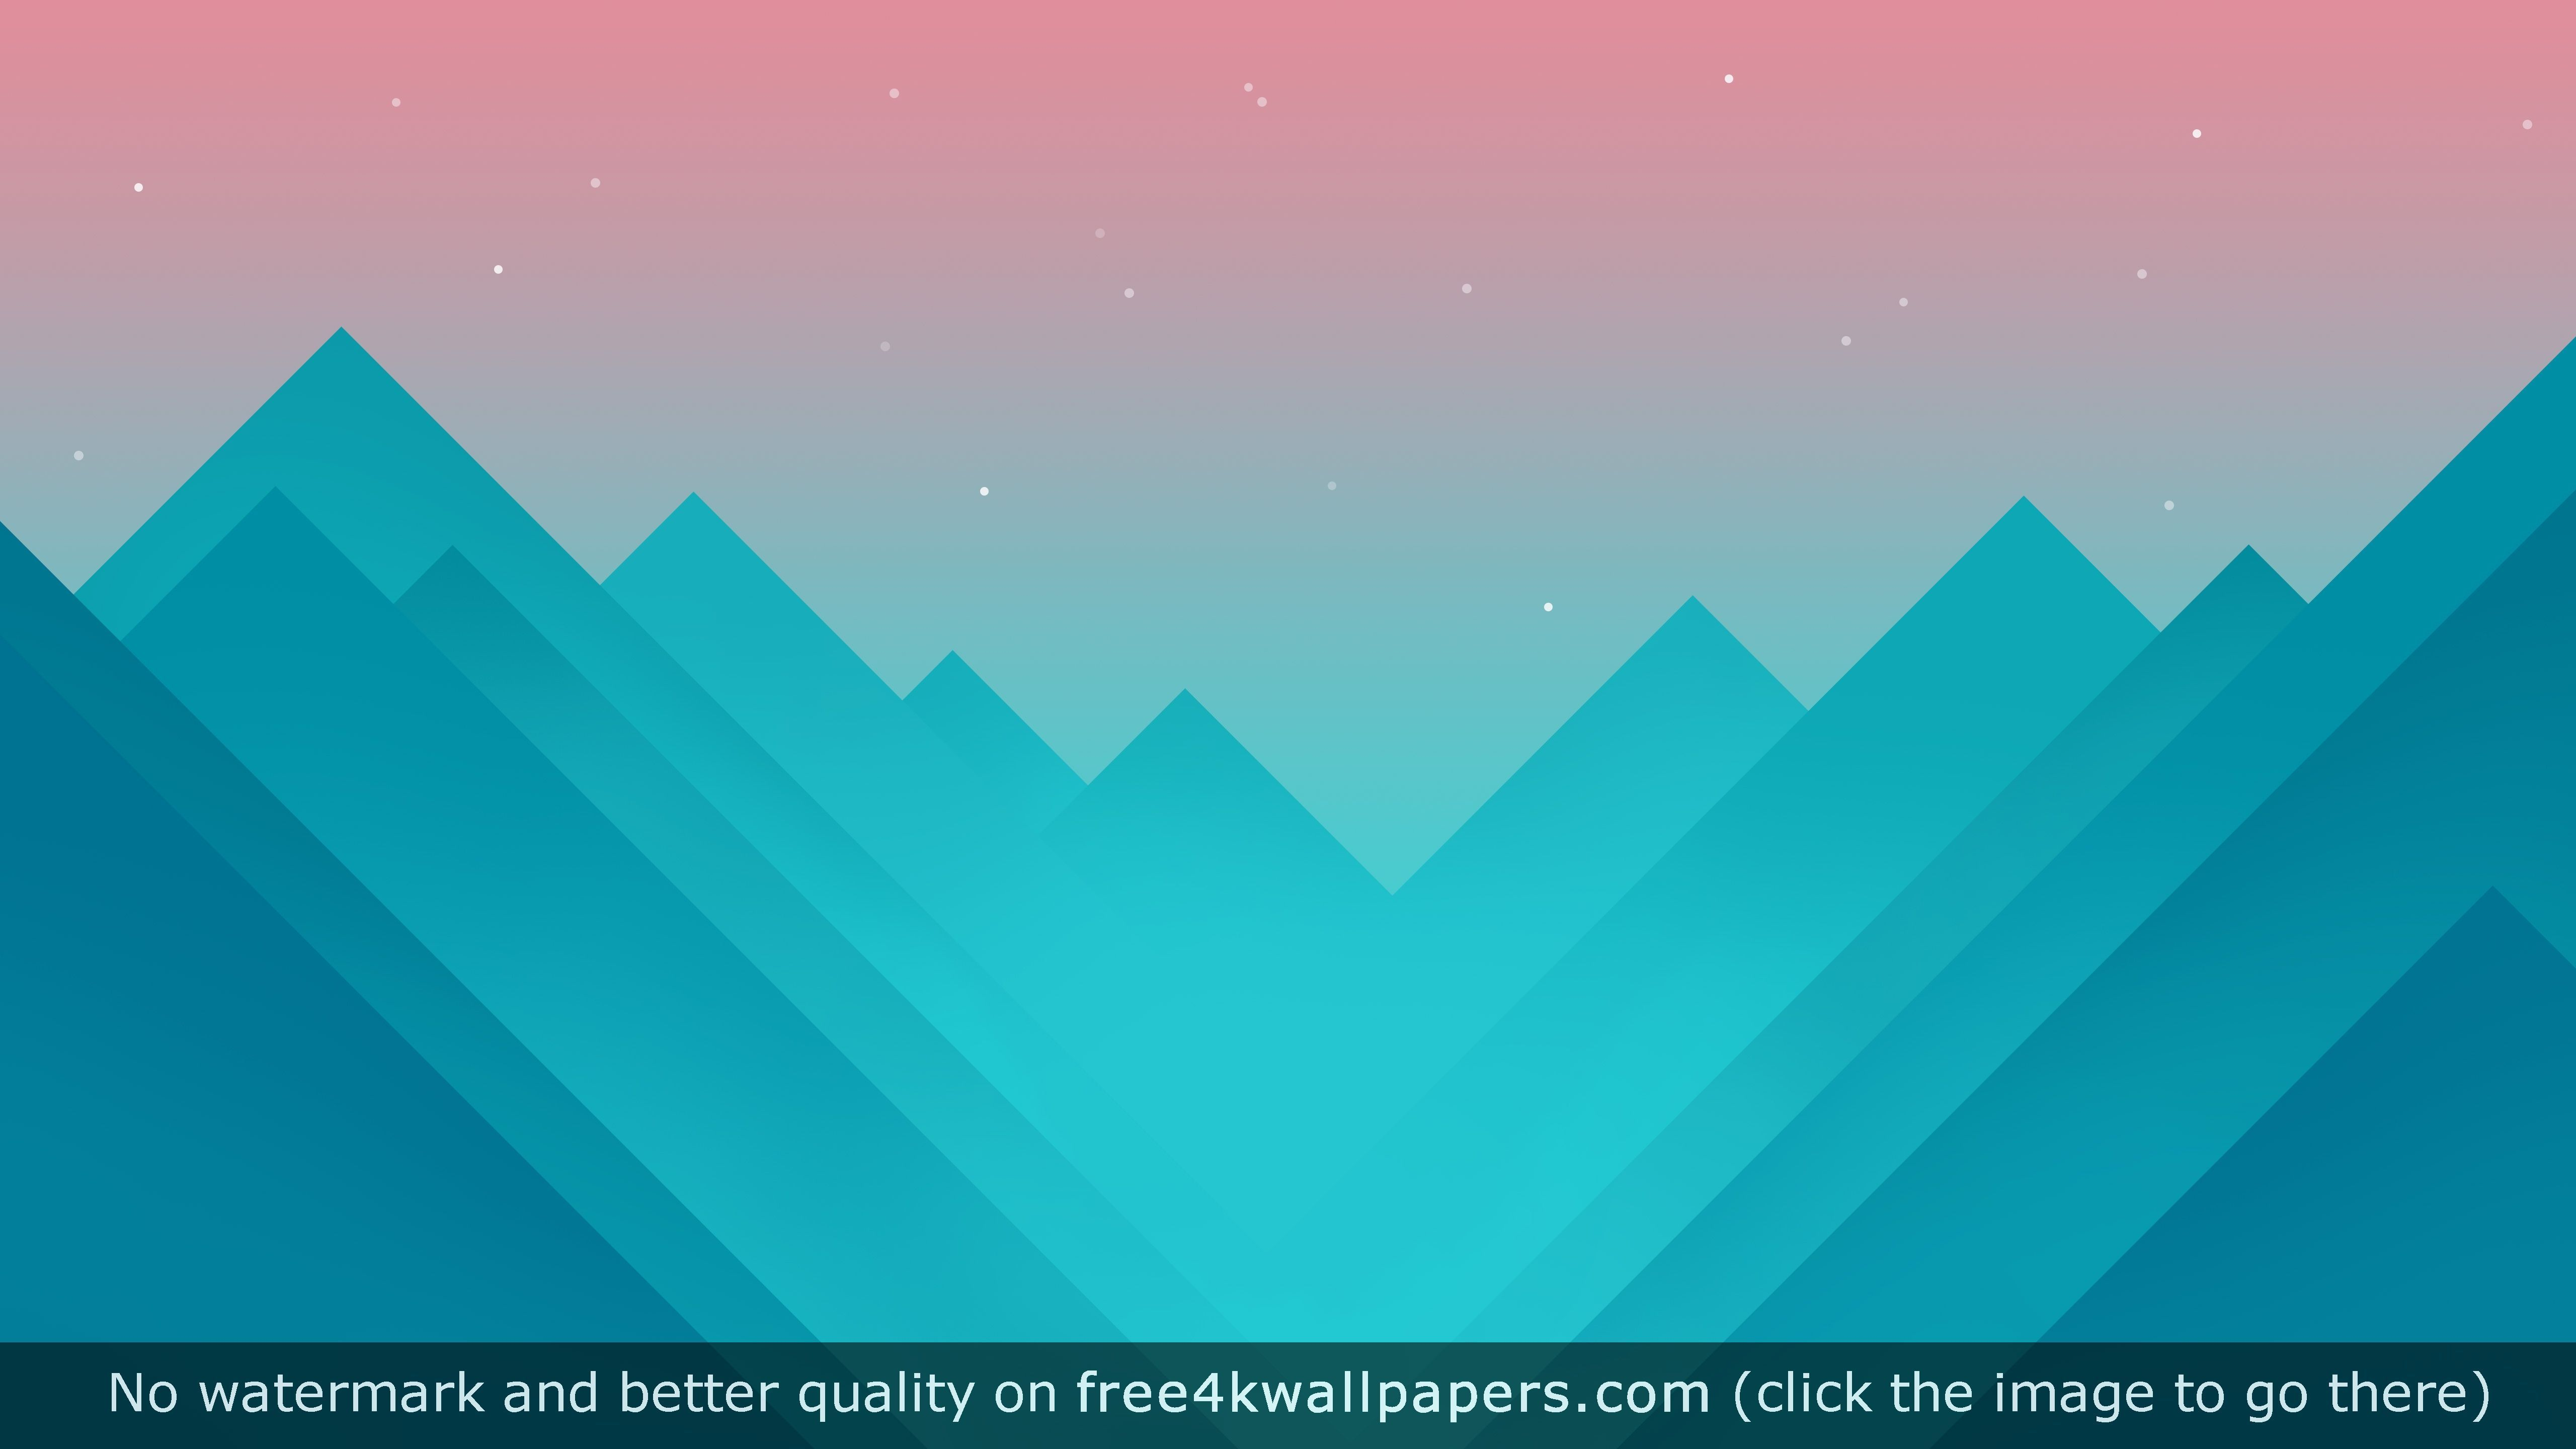 Monument Valley 5K Wallpaper Free4kwallpapers 3d